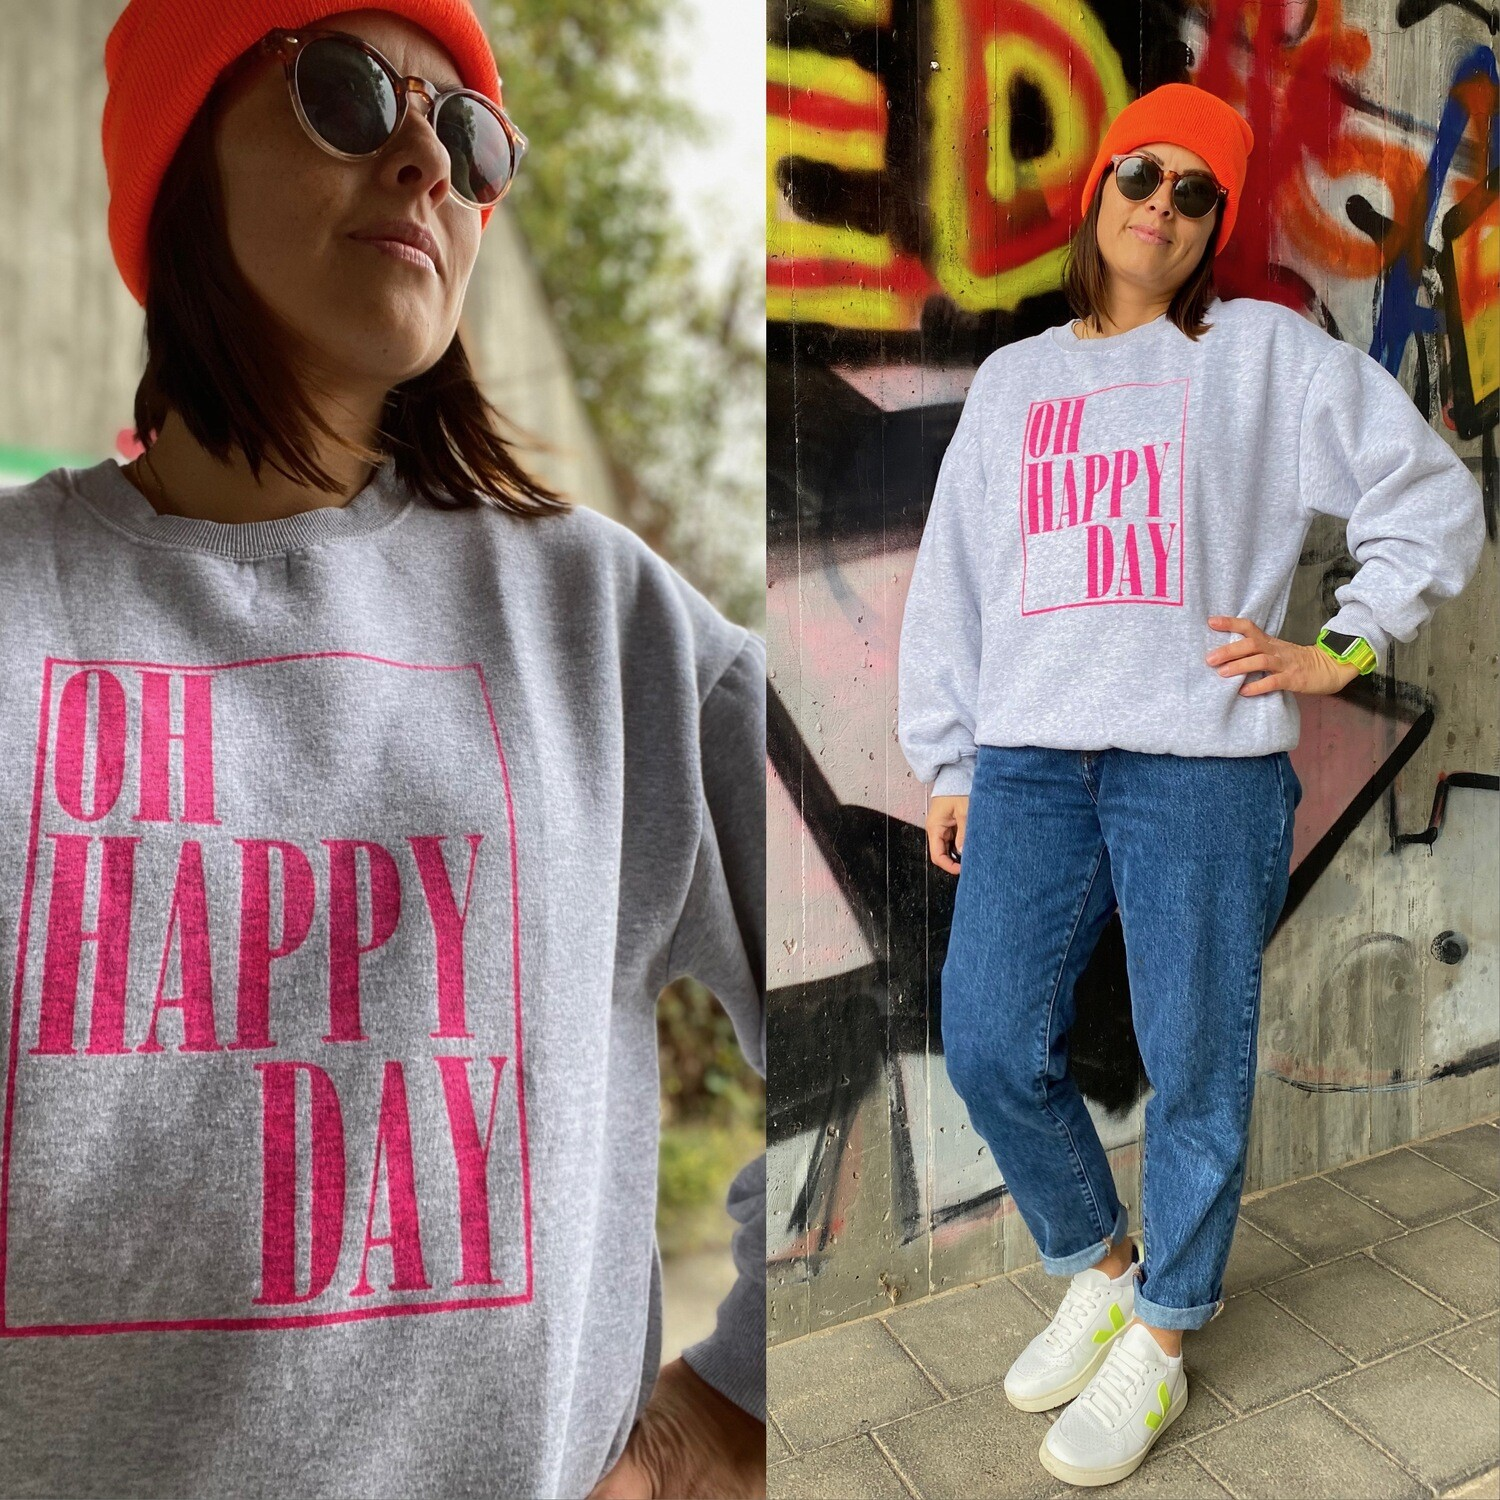 Oh Happy Day - Sweater DIY Unikat grau / neon-pink